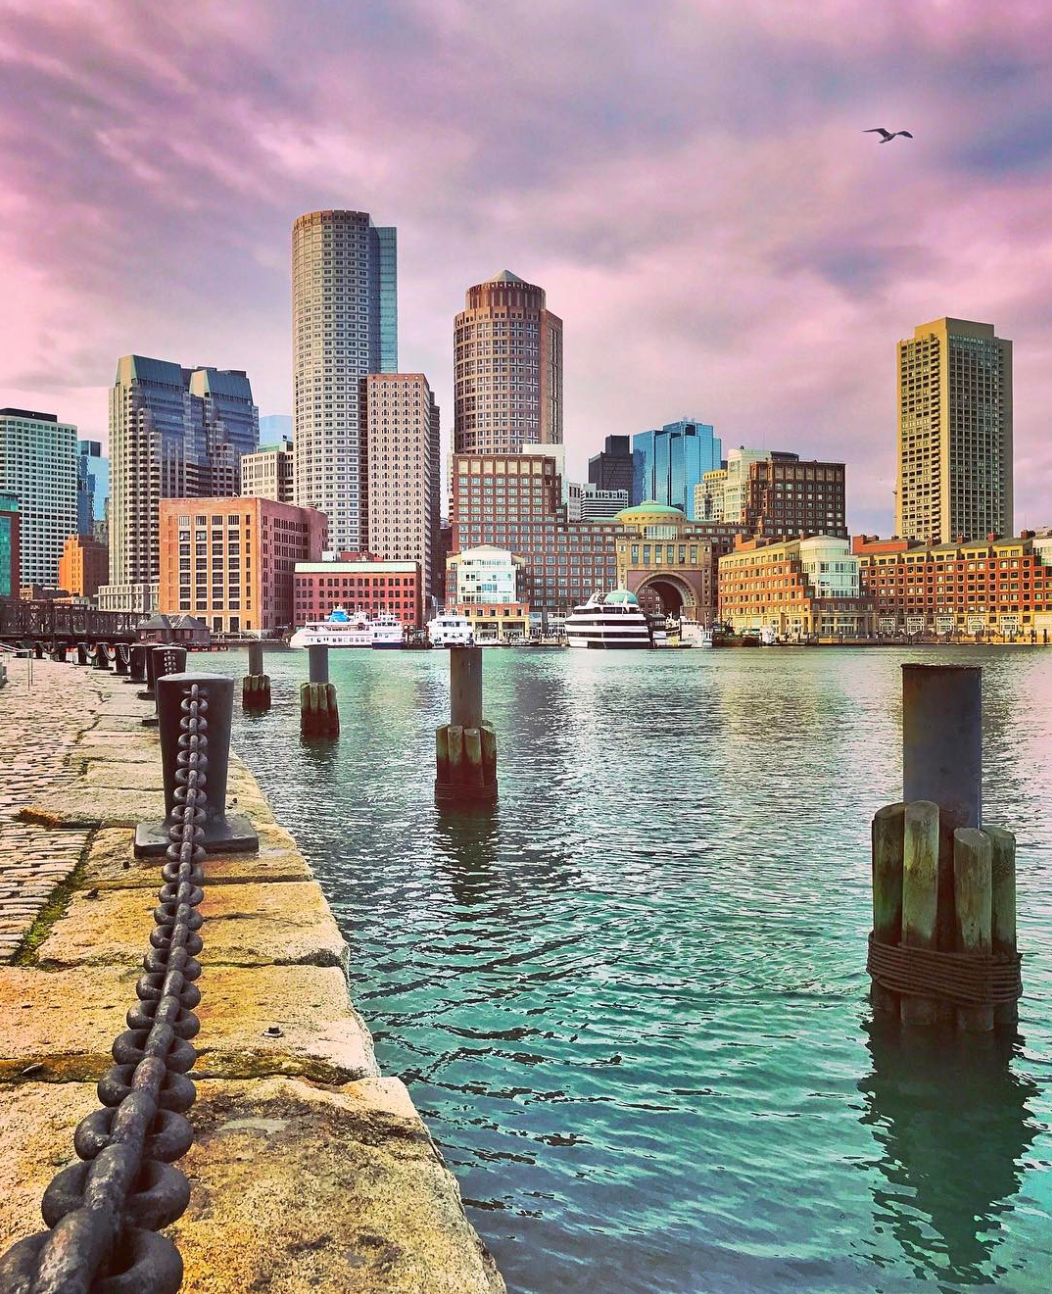 75 things to do in Boston this weekend